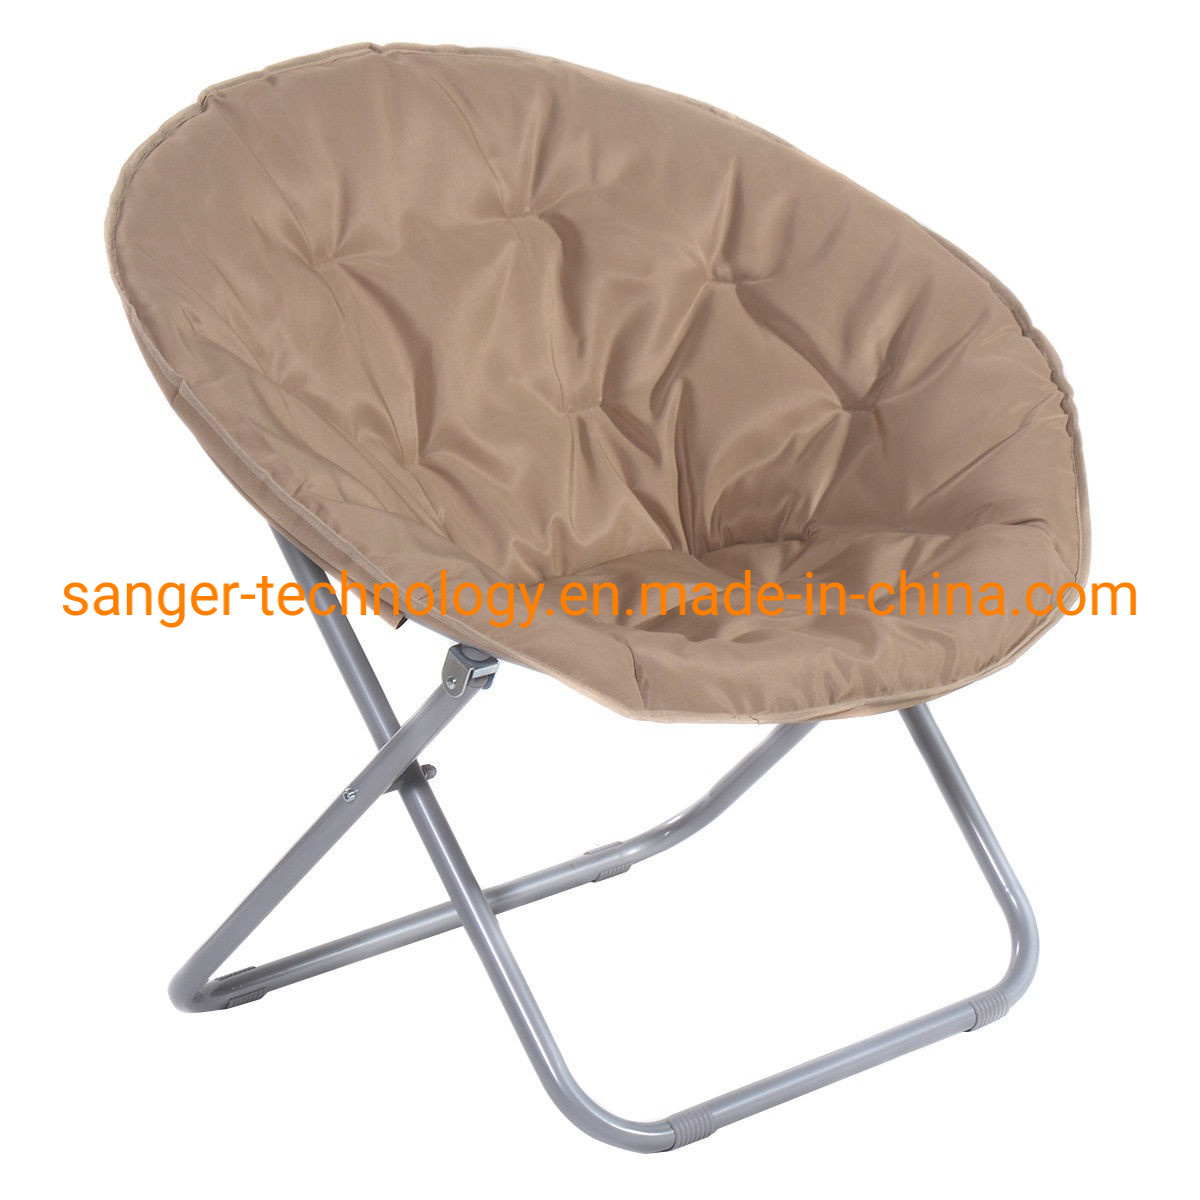 Hot Item Large Folding Saucer Moon Chair Den Tv Living Room Round Seat Durable Steel New